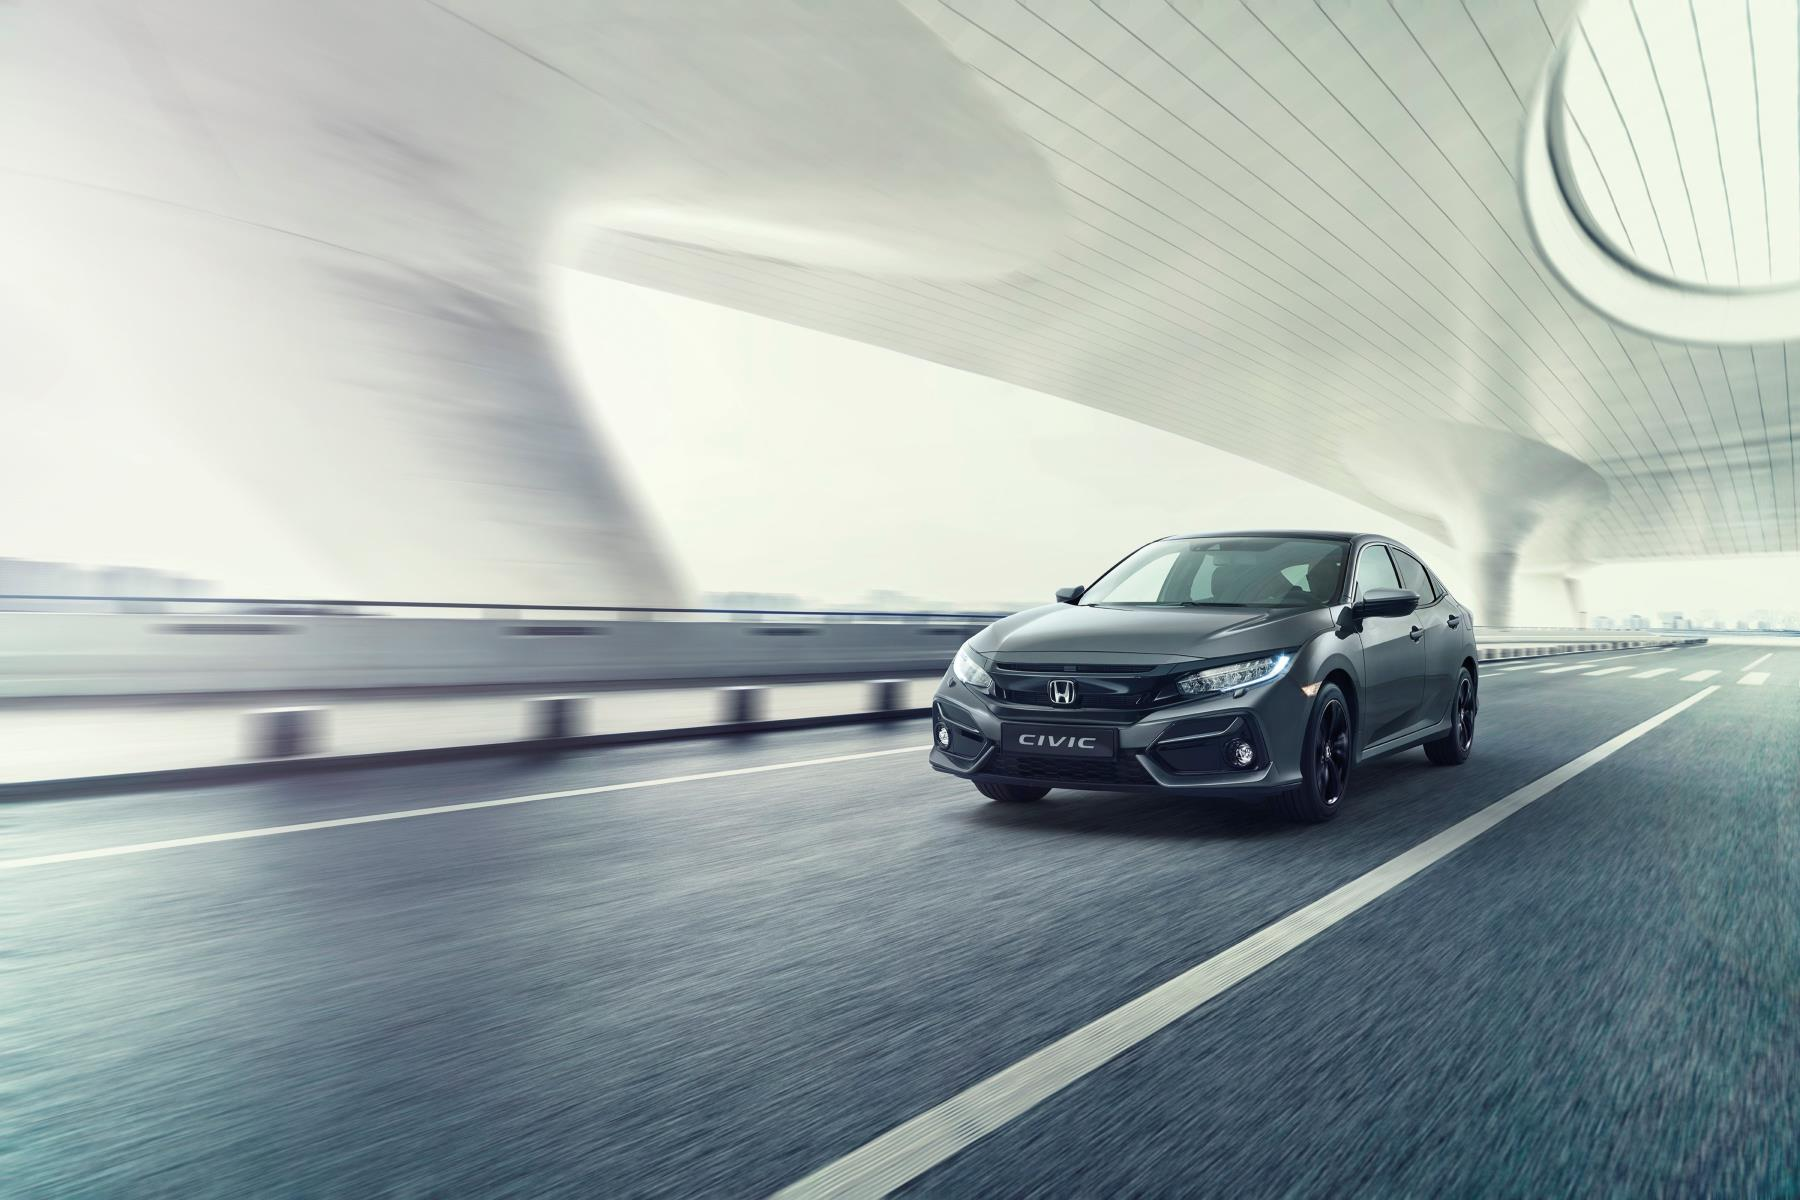 Honda Civic facelift exterior